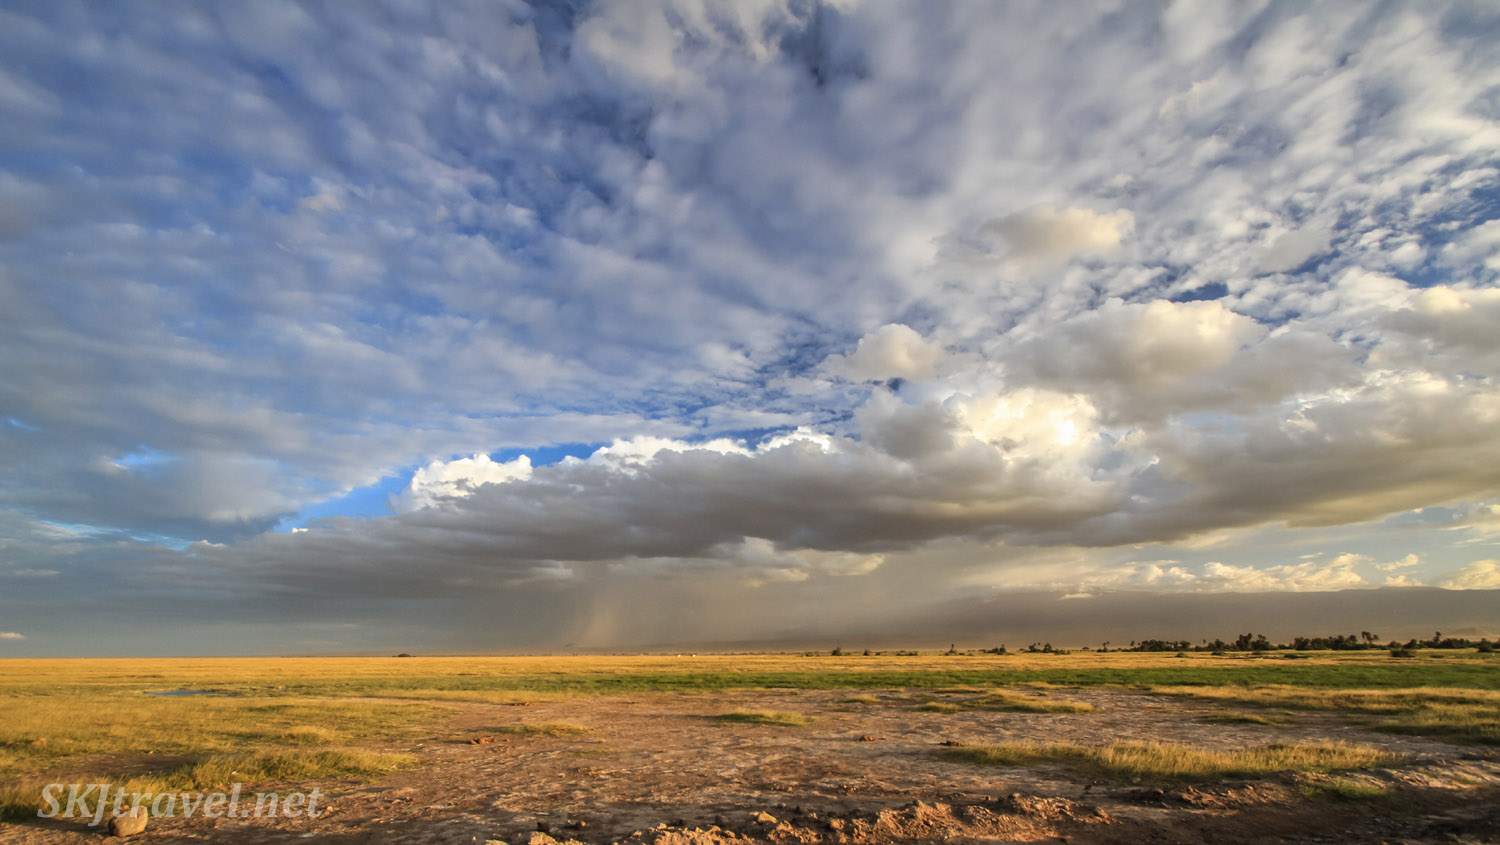 The plains of Amboseli with a sky of clouds. Kenya.